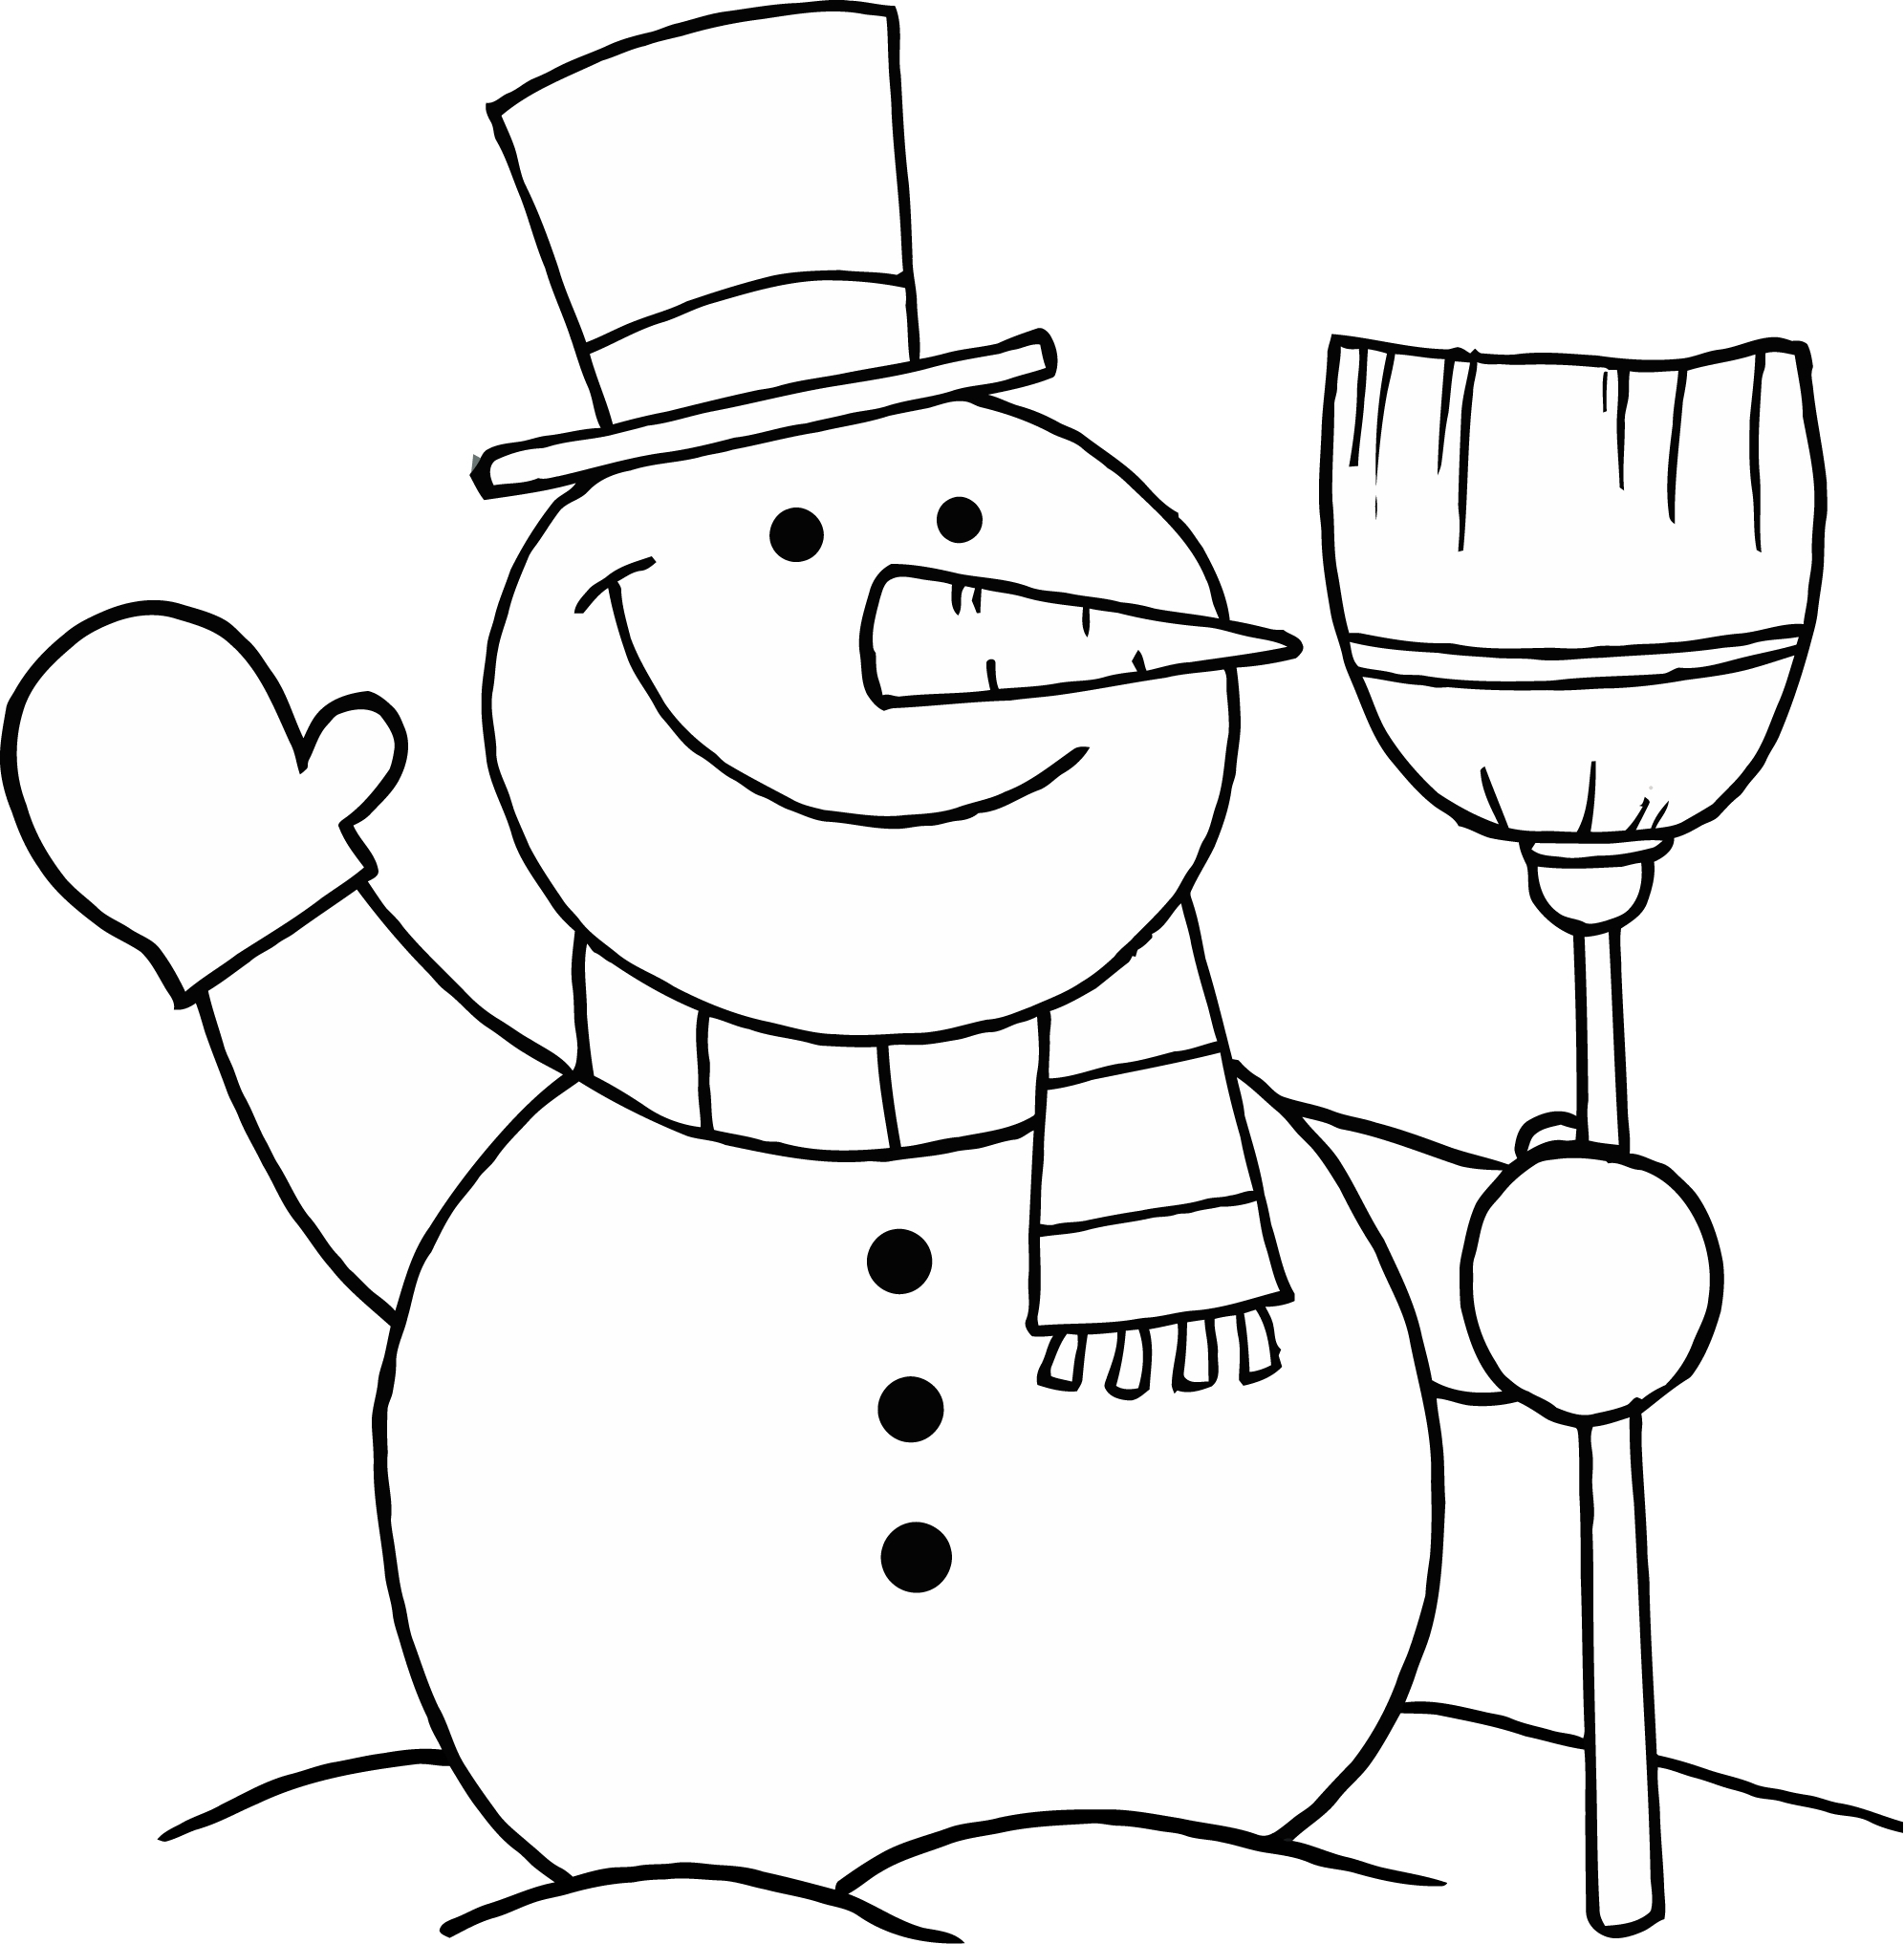 1992x2034 Frosty Snowman Coloring Page Free Printable Pages For Kids Adults